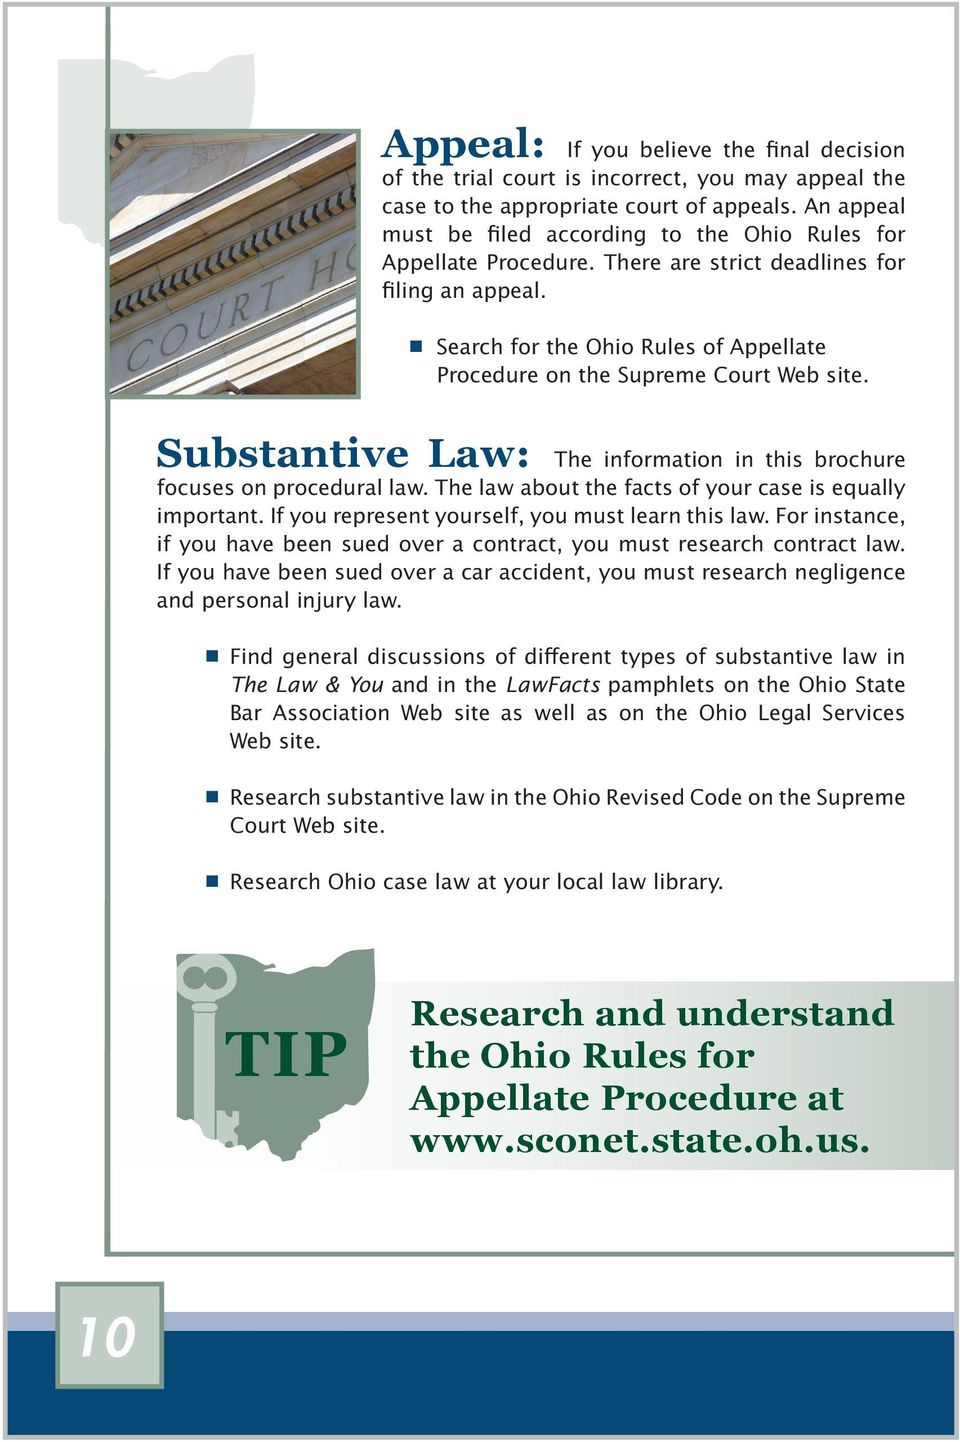 Search for the Ohio Rules of Appellate Procedure on the Supreme Court Web site. Substantive Law: The information in this brochure focuses on procedural law.